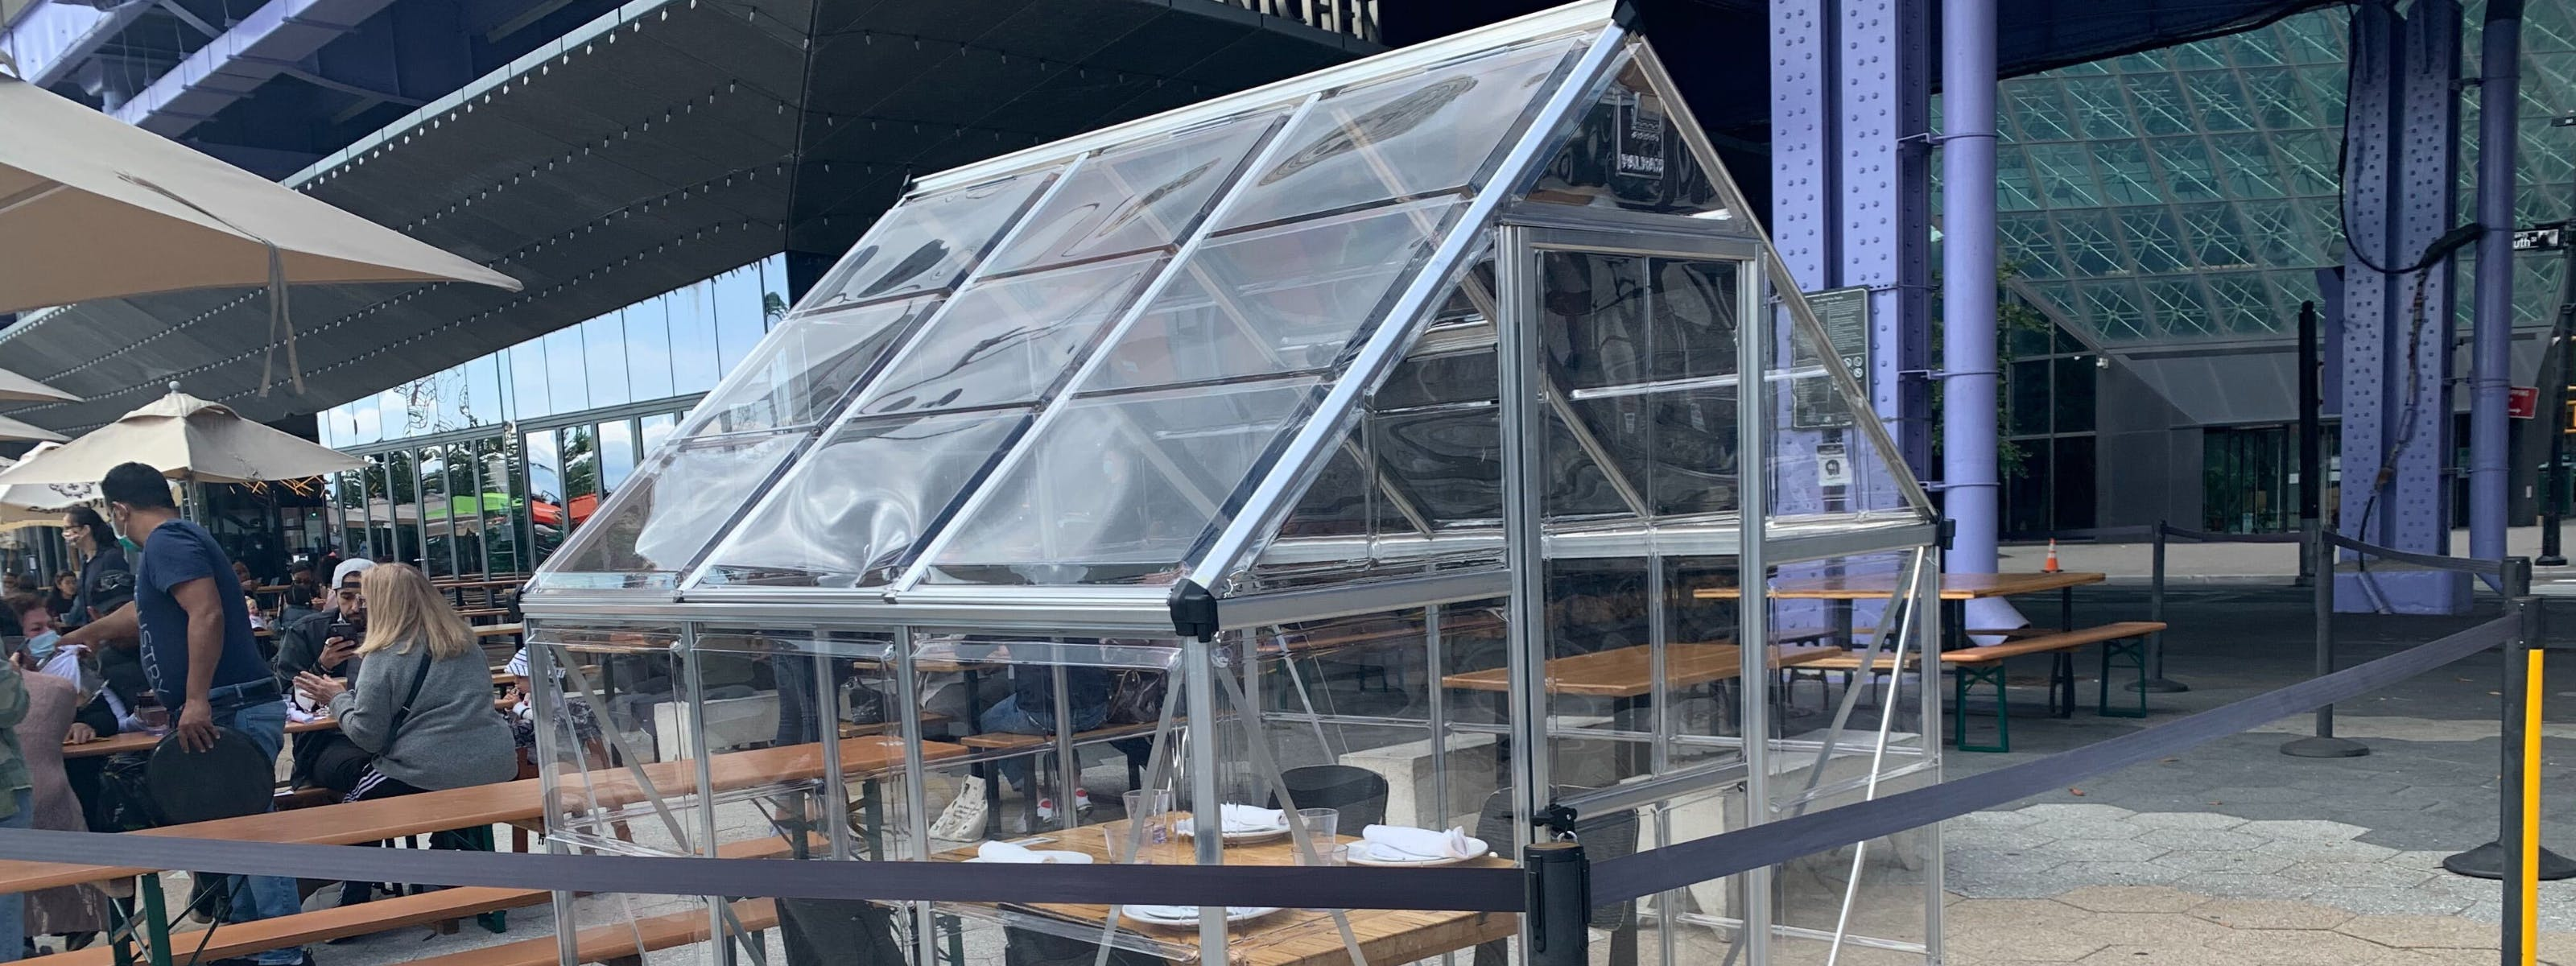 NYC Restaurants With Enclosed Tents For When It's Freezing & Raining Sideways - New York - The Infatuation